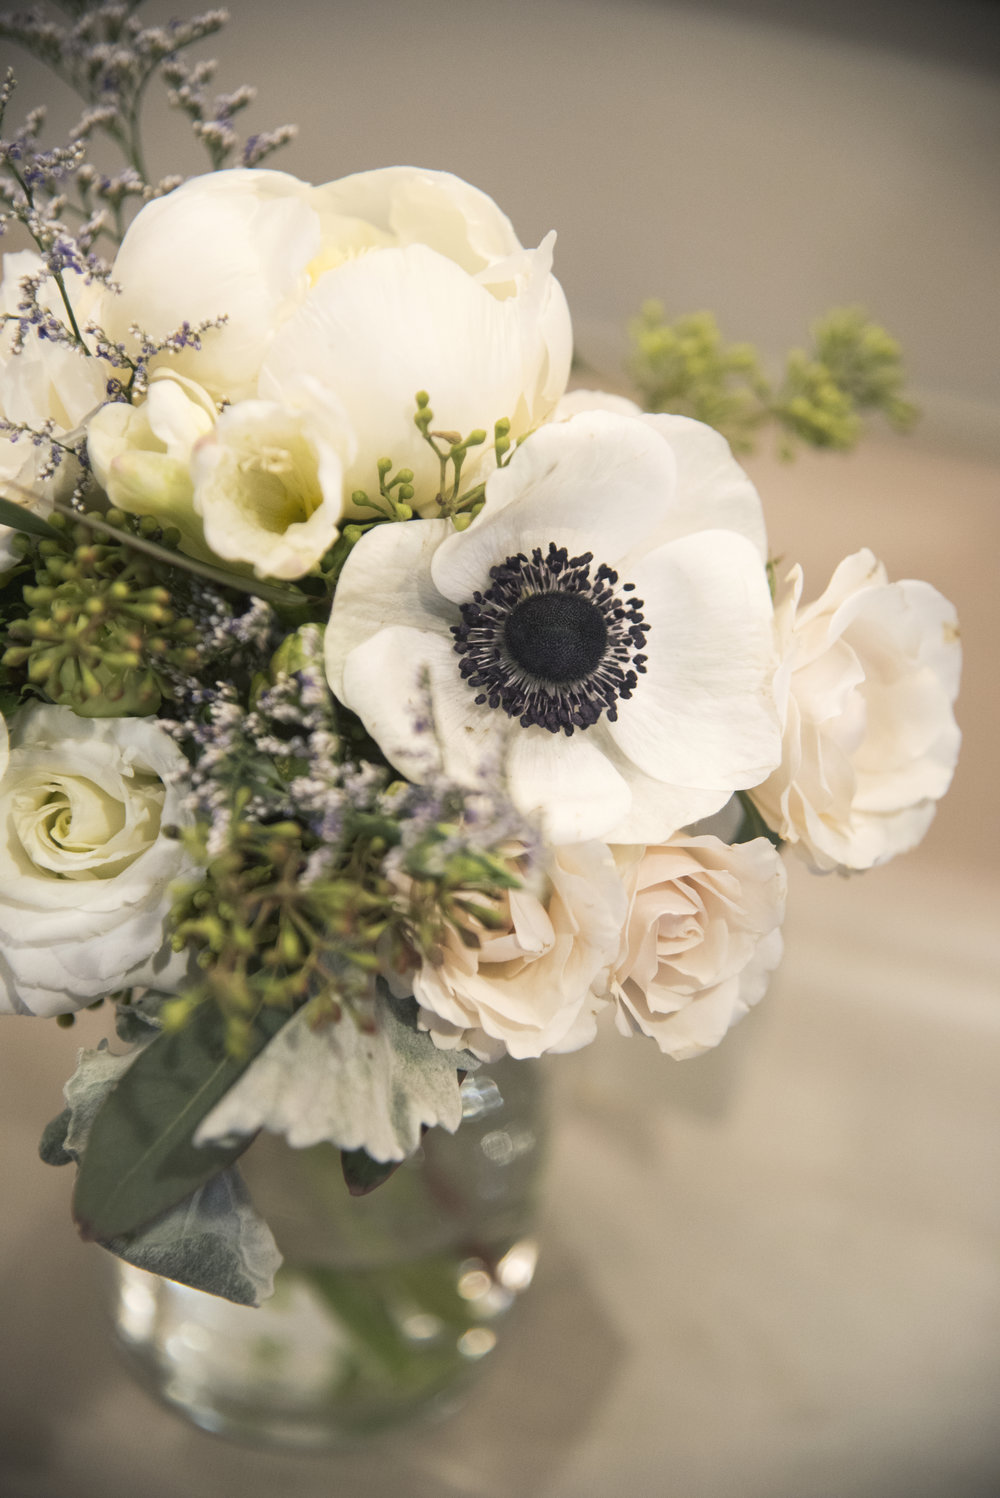 Close up of White Bouquet | Mary and Brad's Outdoor Wedding Photography at Hudson Gardens | Colorado Springs, Colorado Photographer | Farm Wedding Photographer | Apollo Fields Wedding Photojournalism